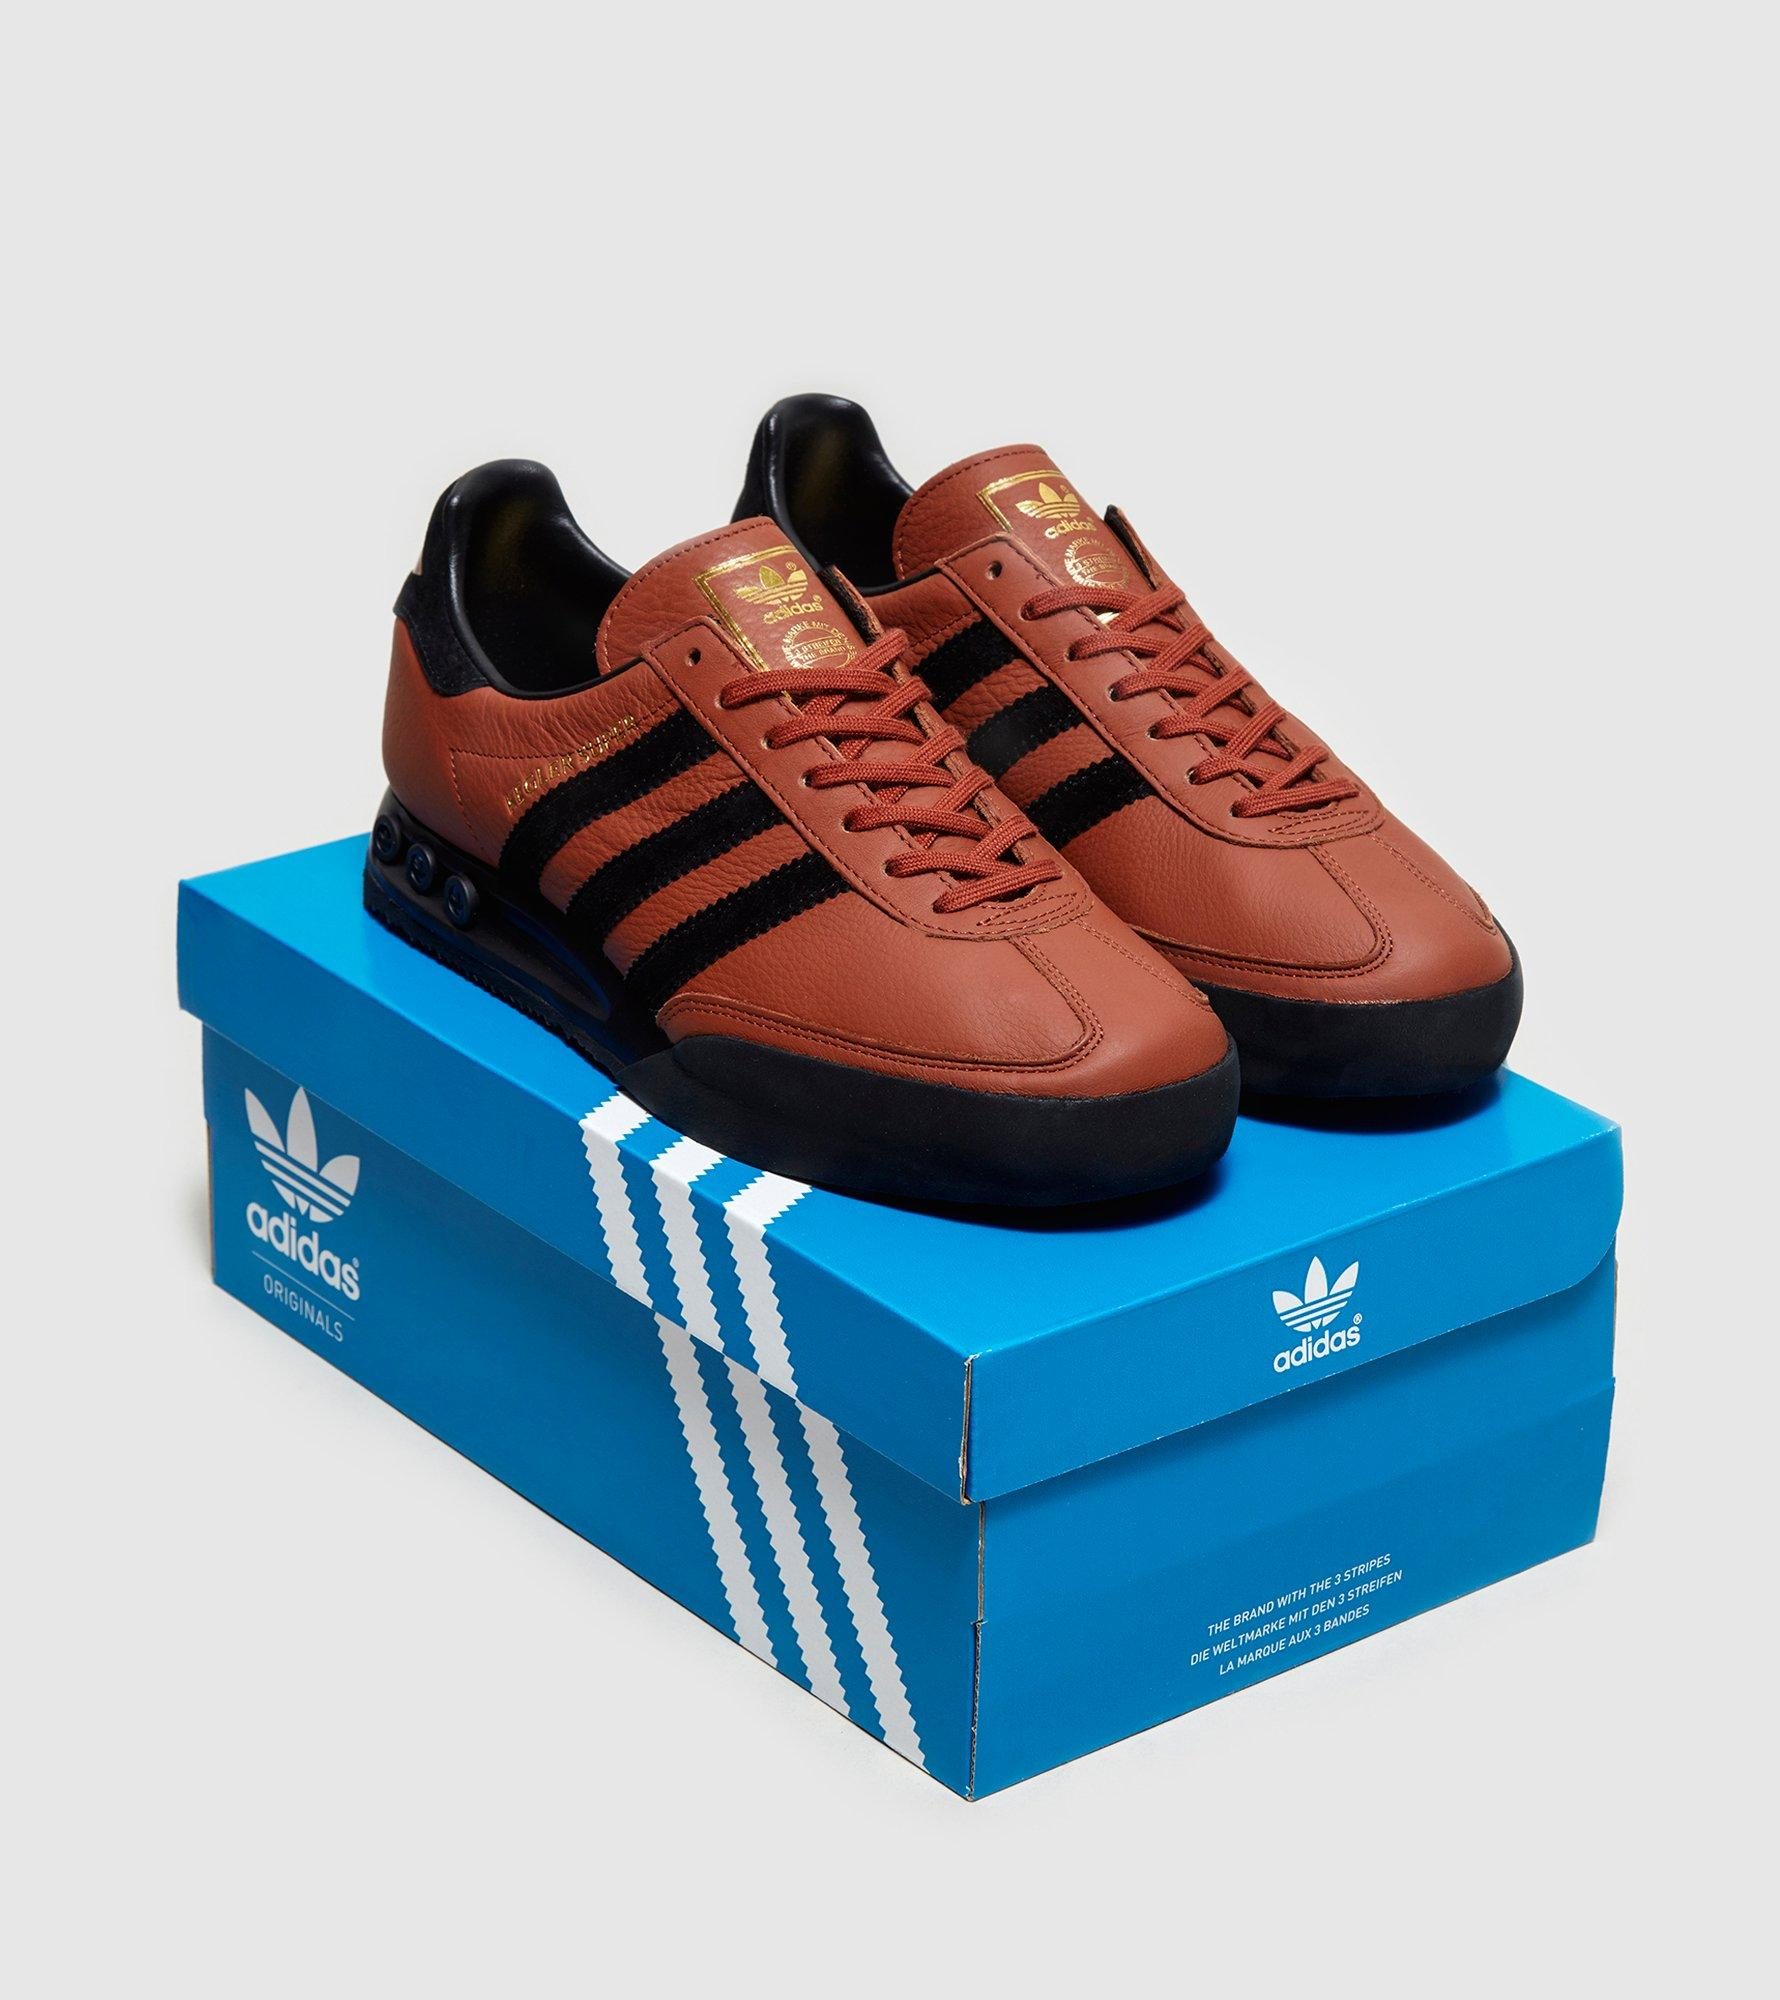 adidas jeans super turquoise